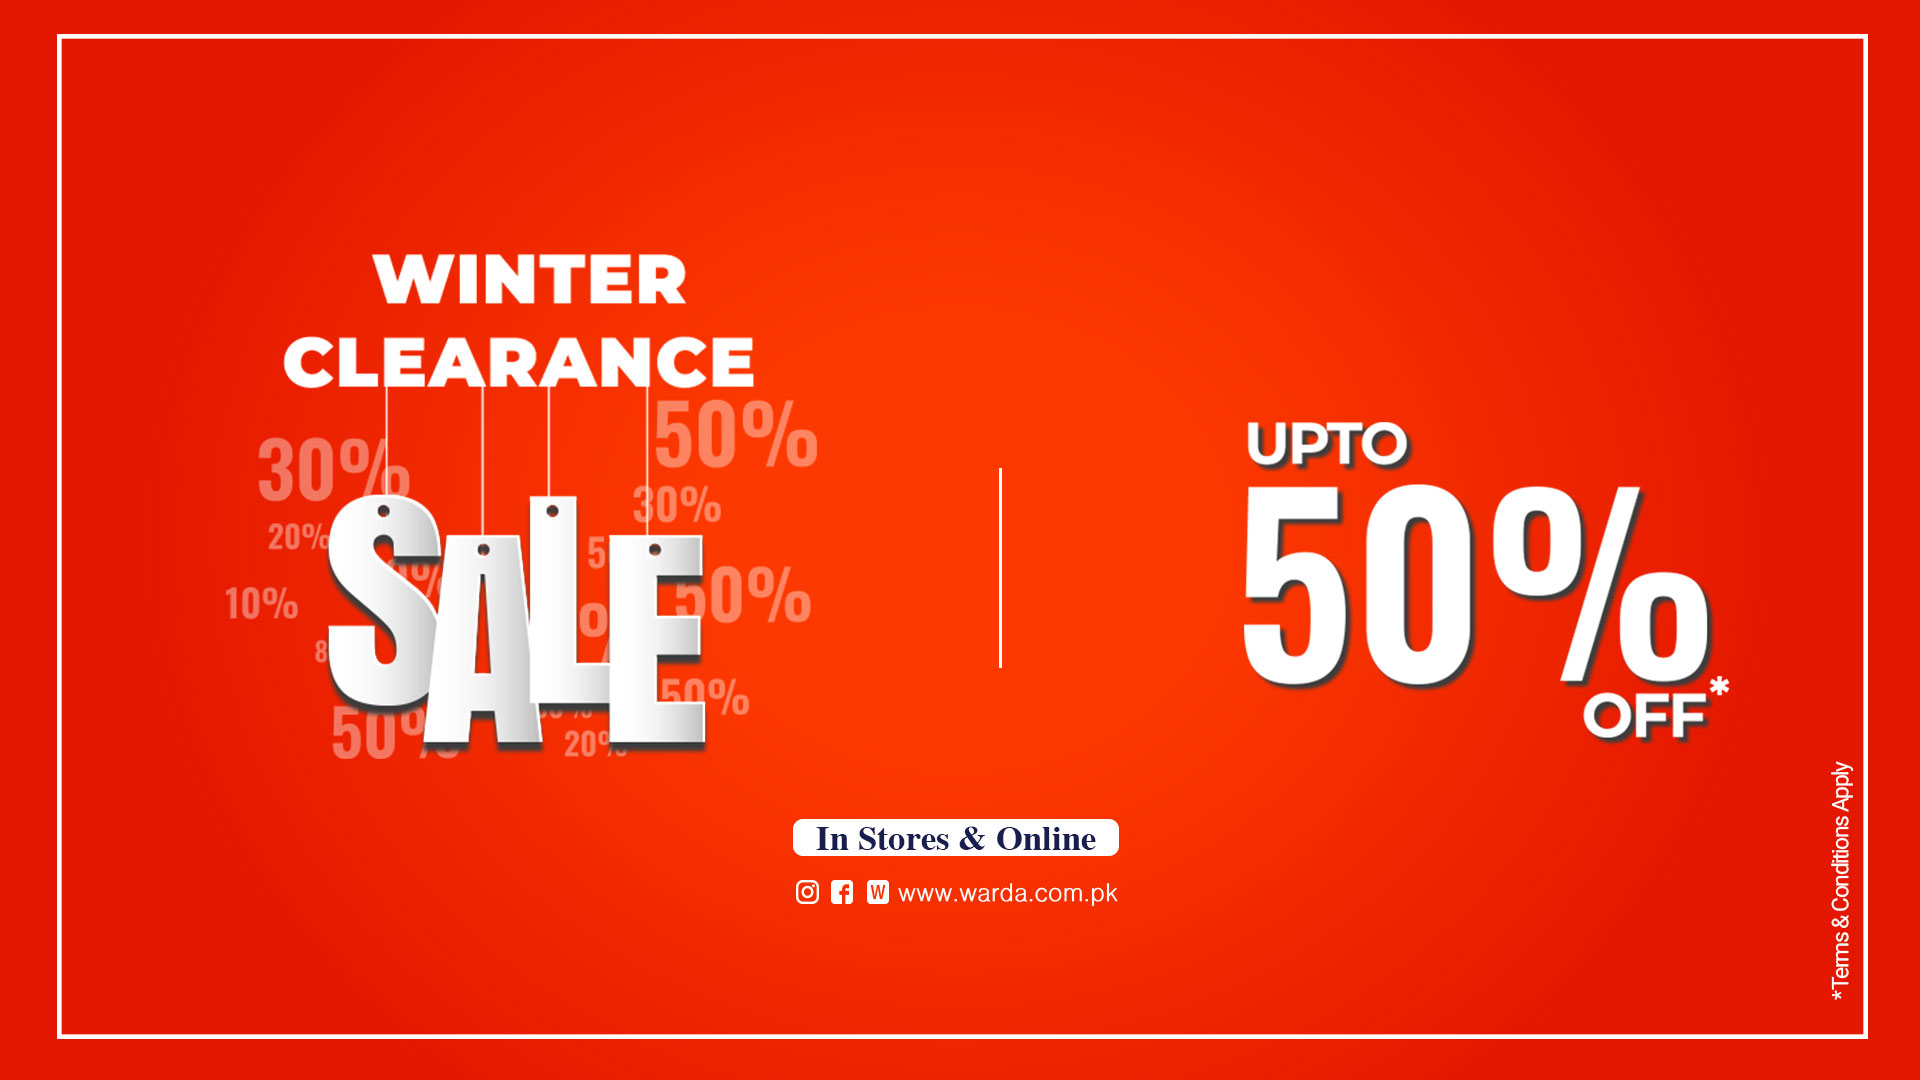 Warda - Great Winter Clearance SALE